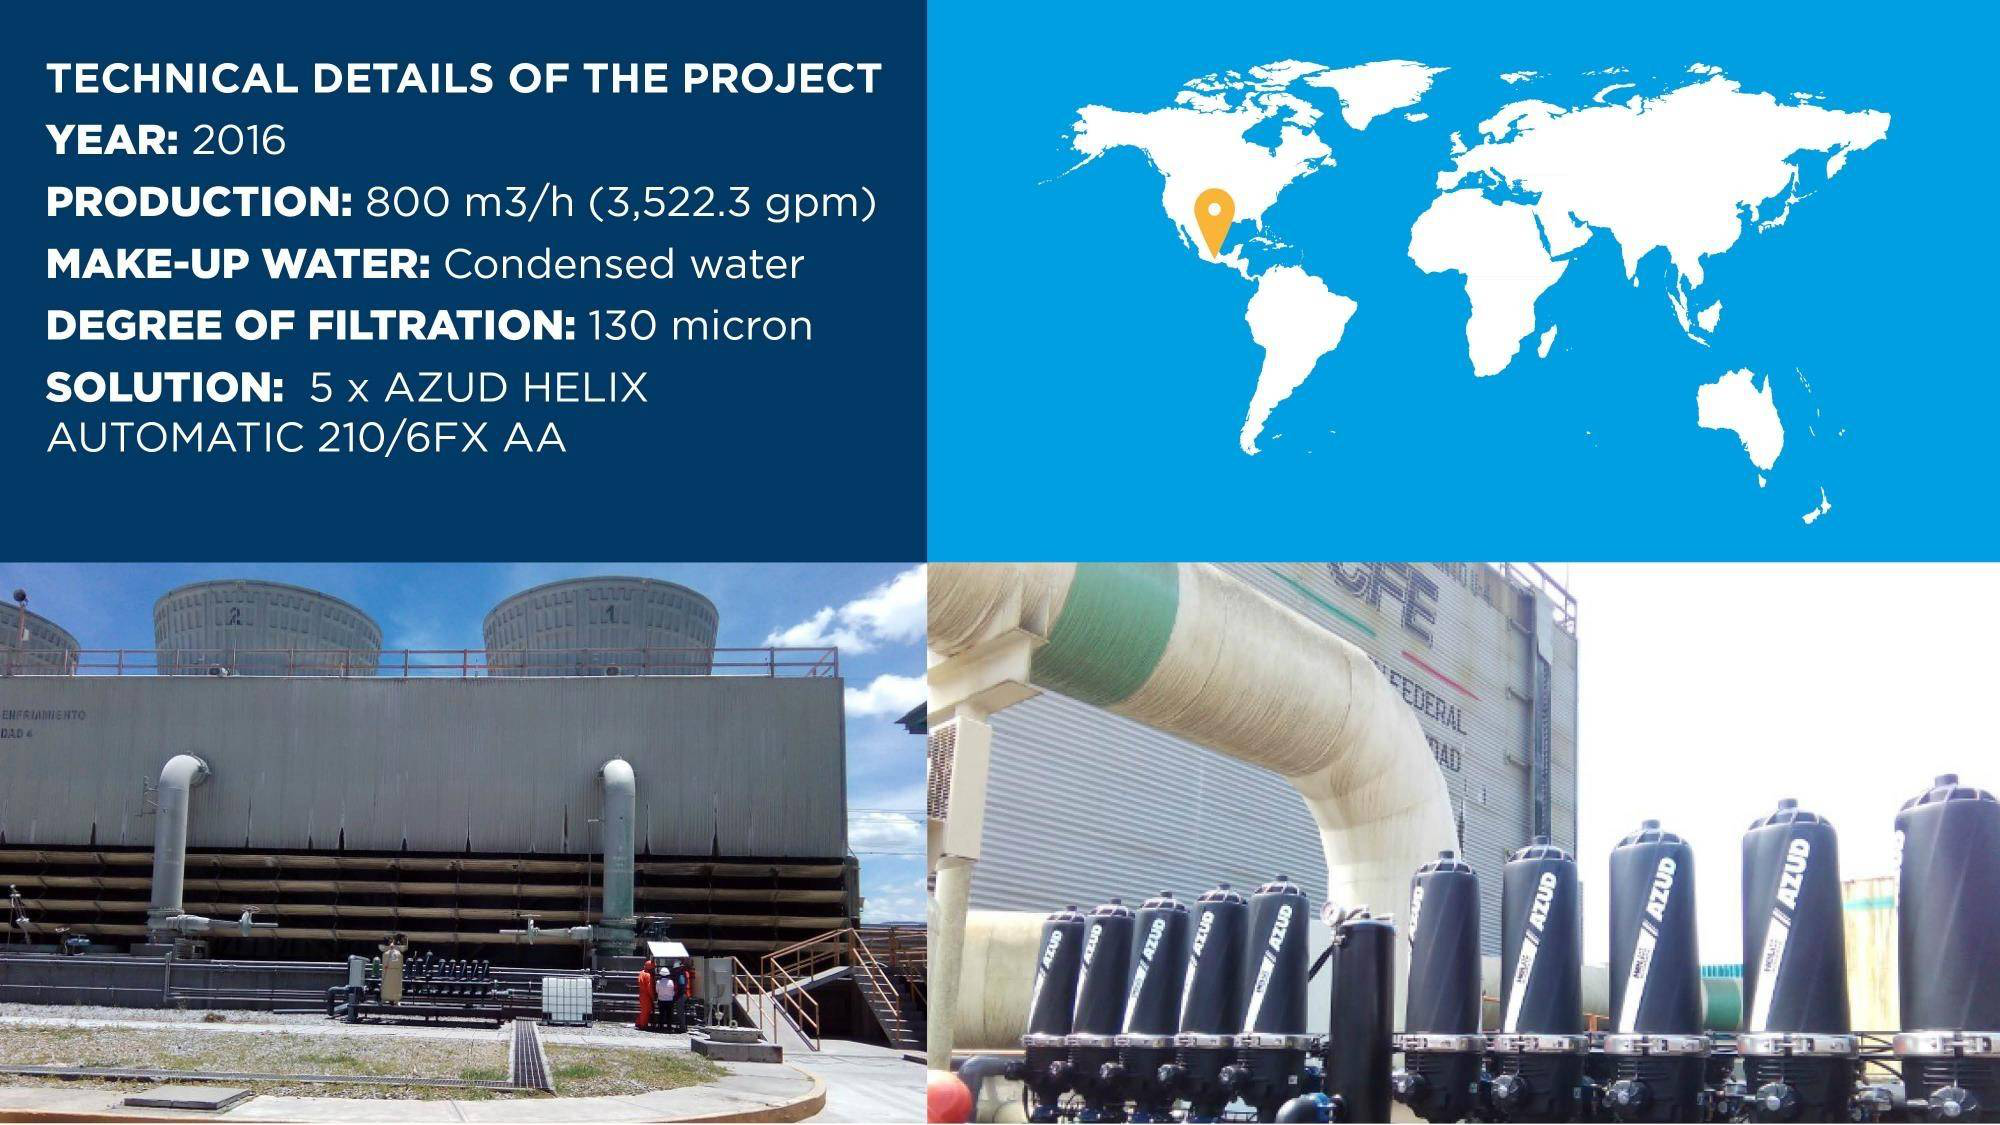 Gallery image 0 - One of the largest electricity companies in Latin America were incurring heat transfer losses due to an accumulation of small particles. Their strong environmental conscience and the accumulated costs made them look for a solution. They trusted in AZUD to solve the situation.